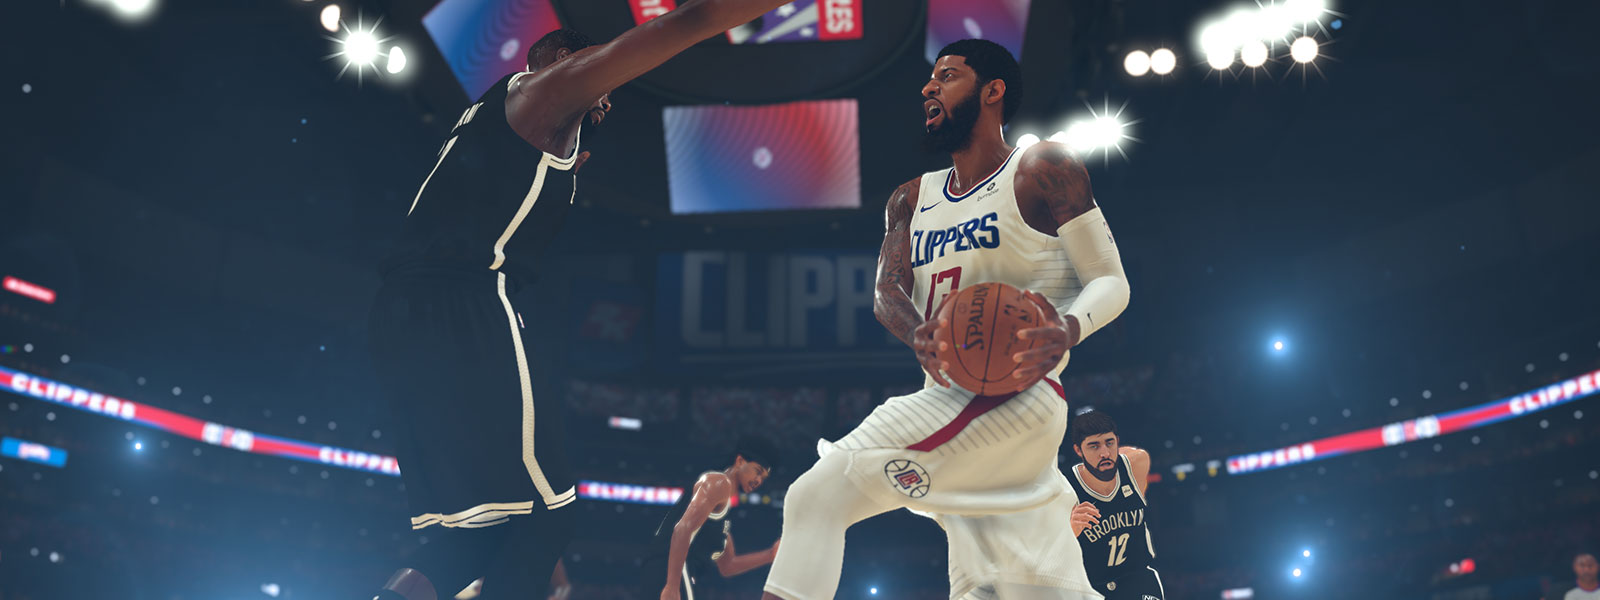 Clippers player with basketball going against a Brooklyn player